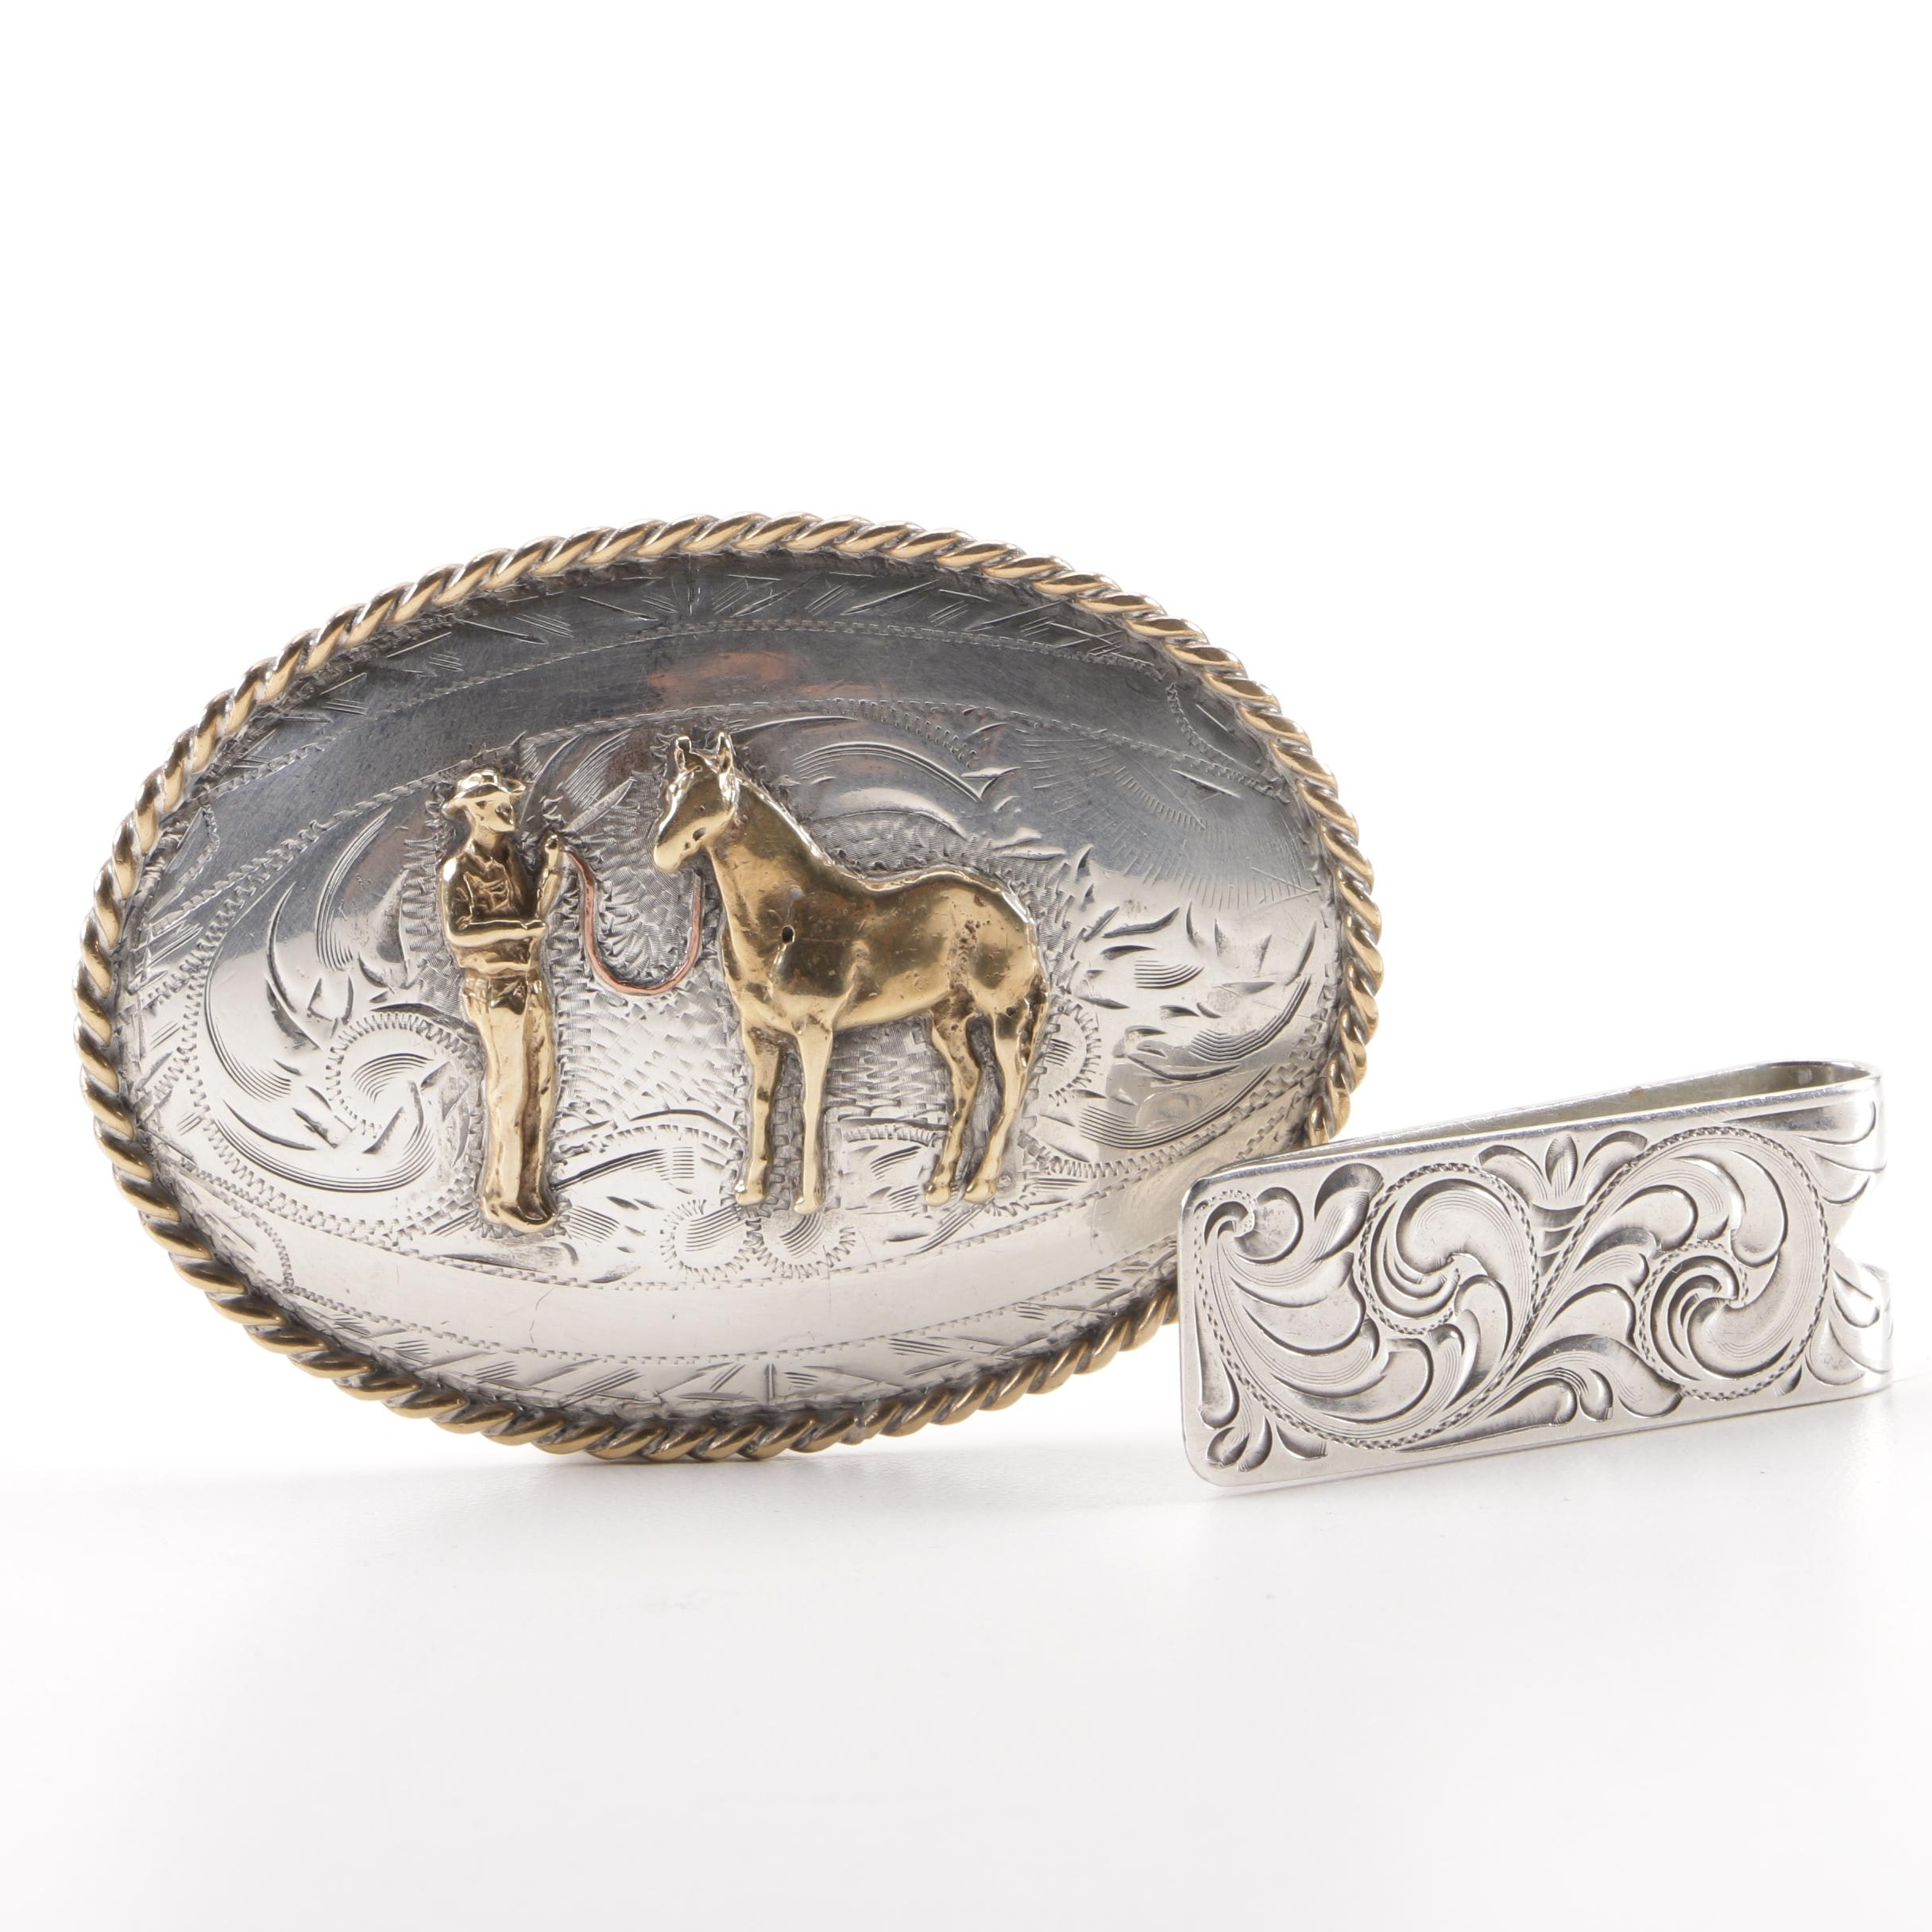 Engraved Tex Tan Belt Buckle and Vogt Money Clip with Sterling Silver Fronts